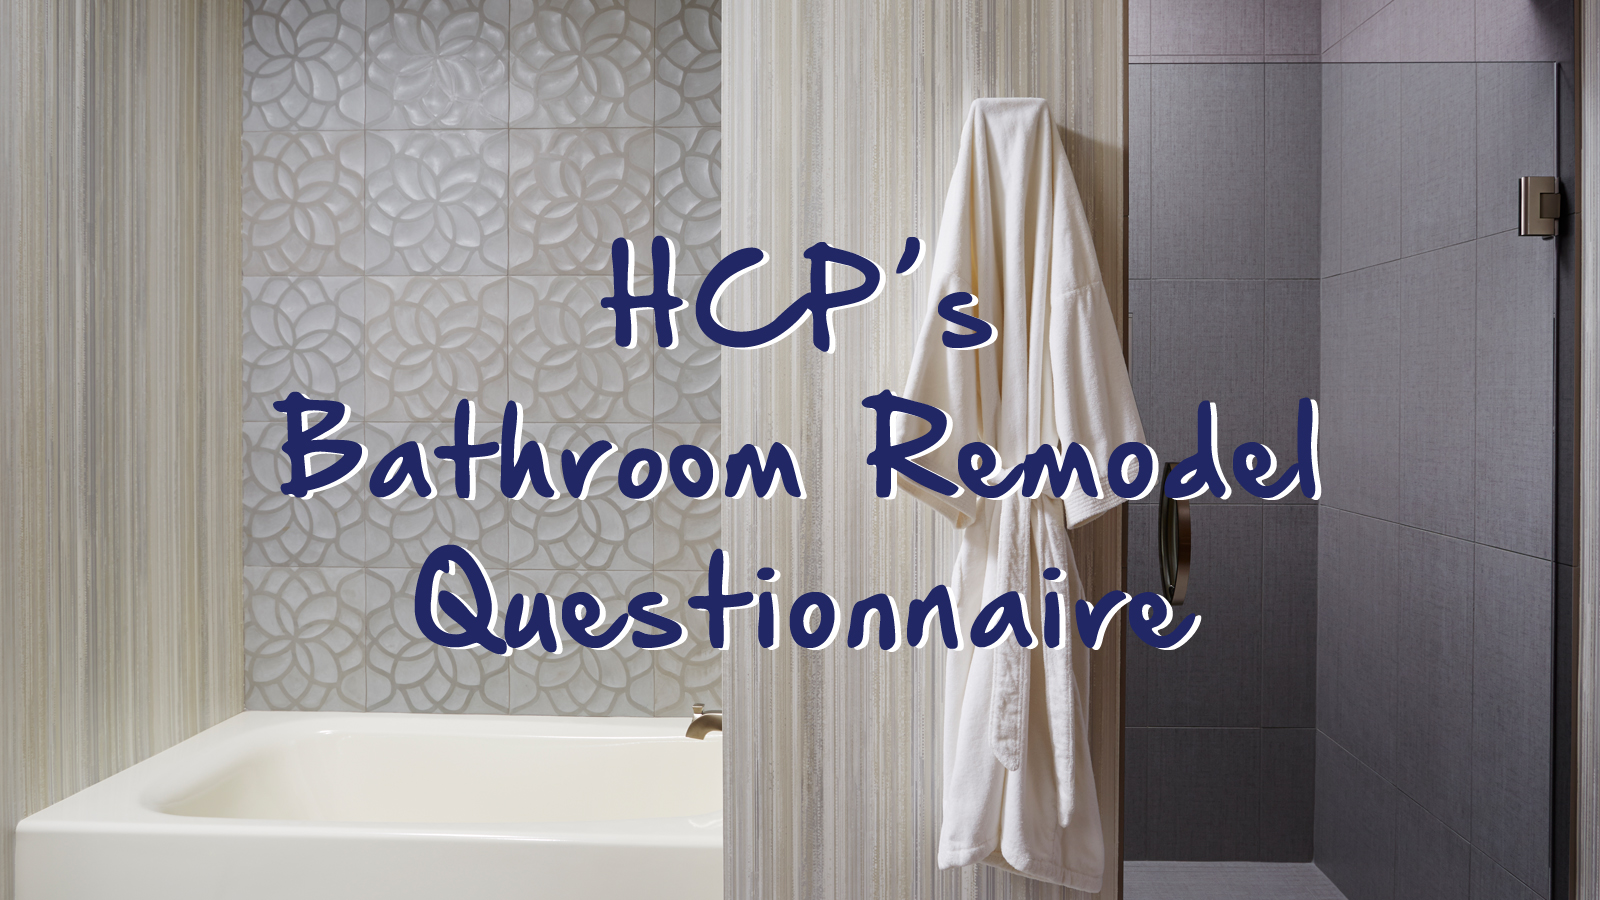 Hcps bathroom remodel questionnaire home check plus